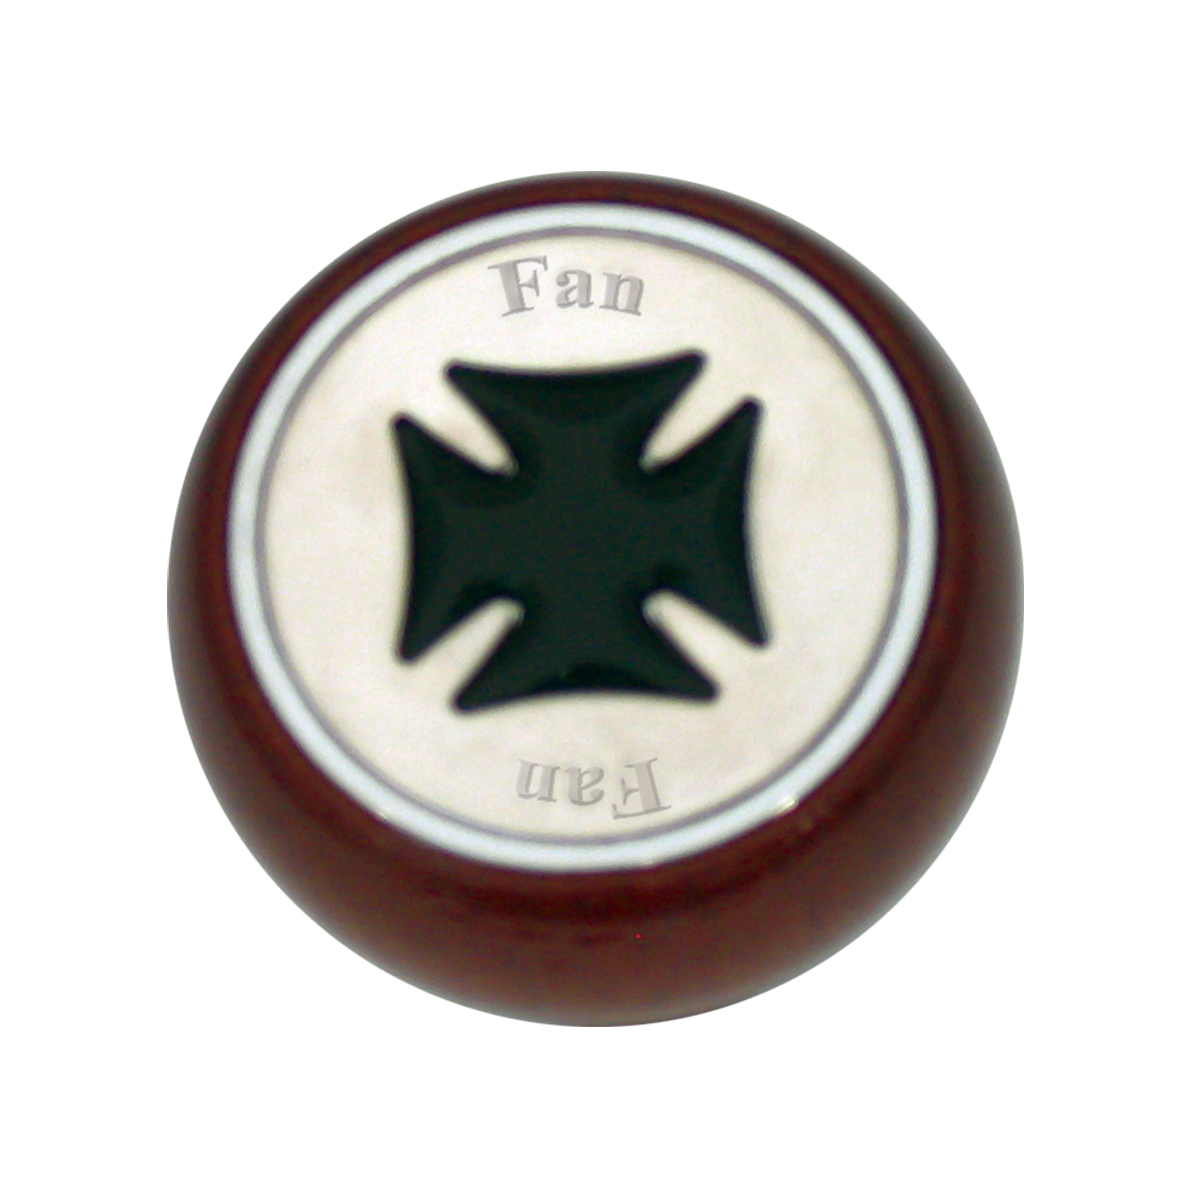 95460 Black Iron Cross Dashboard Control Knob w/ Fan Script